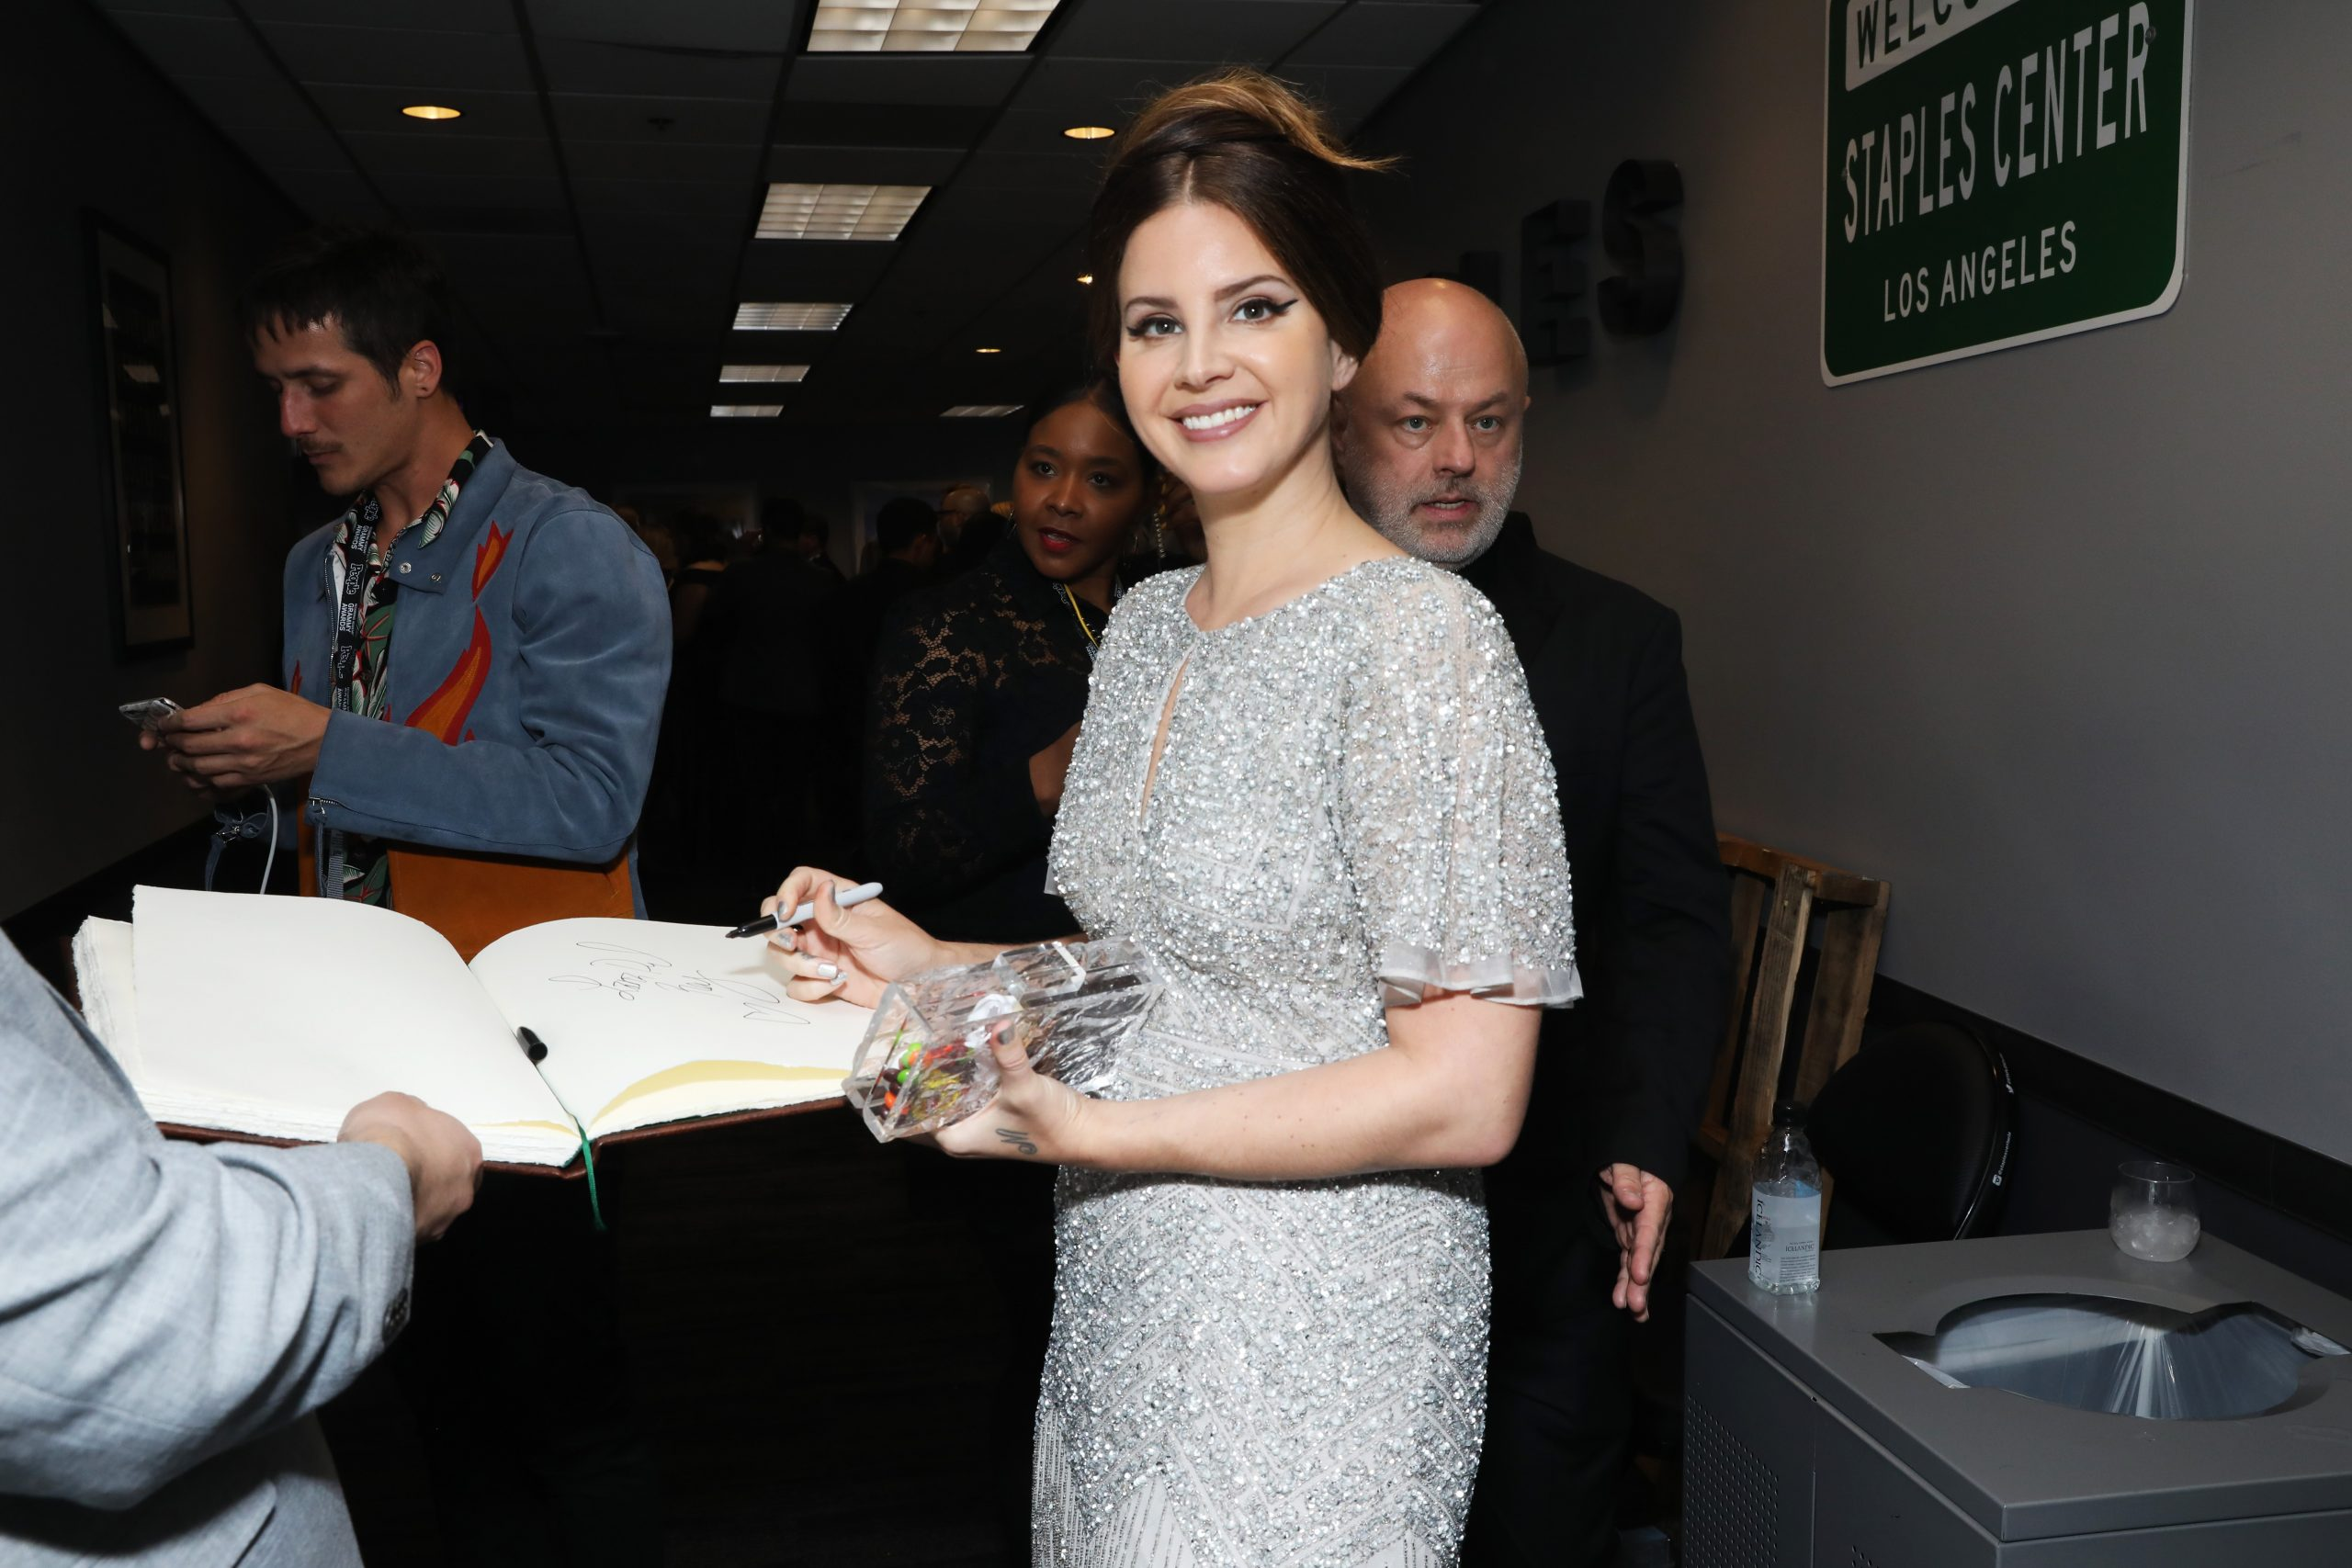 """Lana Del Rey Quits Social Media: """"I Have So Many Other Interests And Jobs"""""""